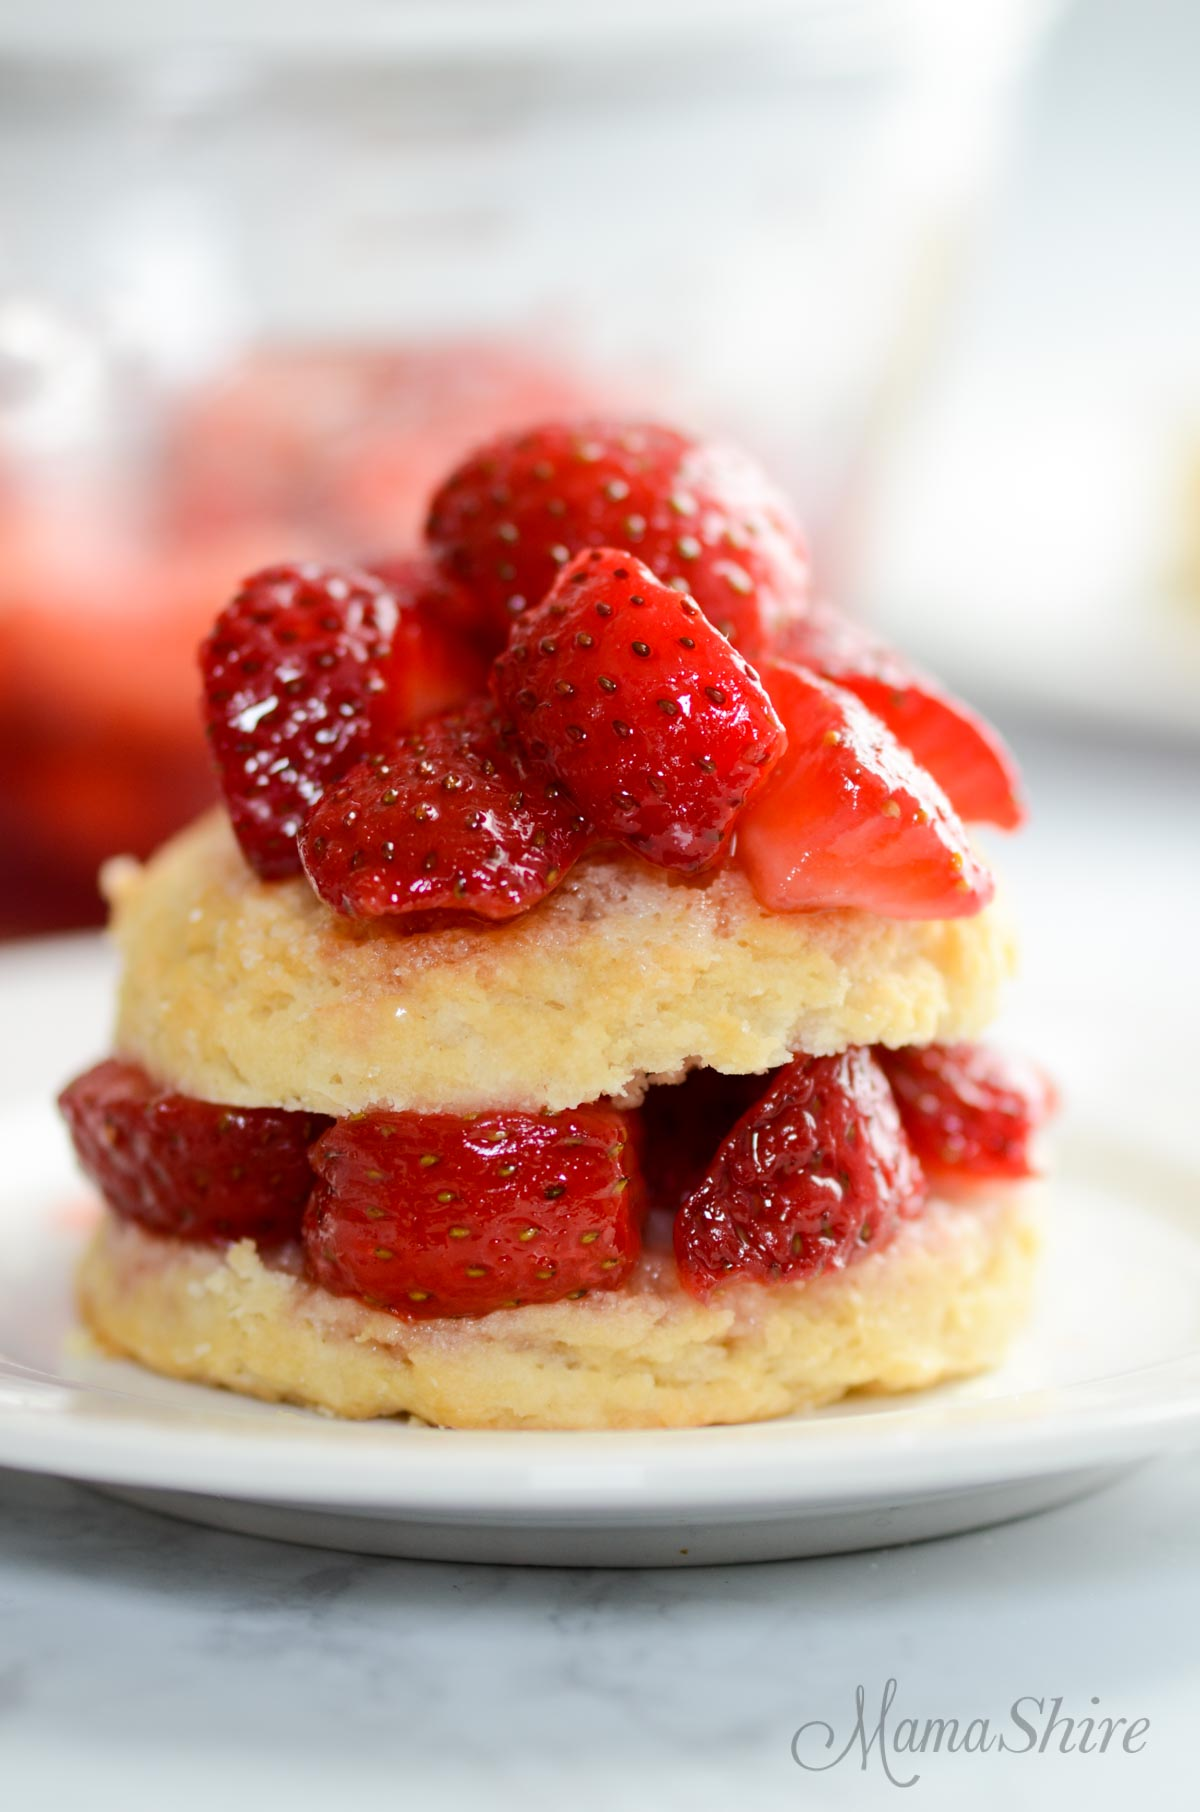 Strawberry Shortcake (gluten-free & dairy-free) with strawberries only.